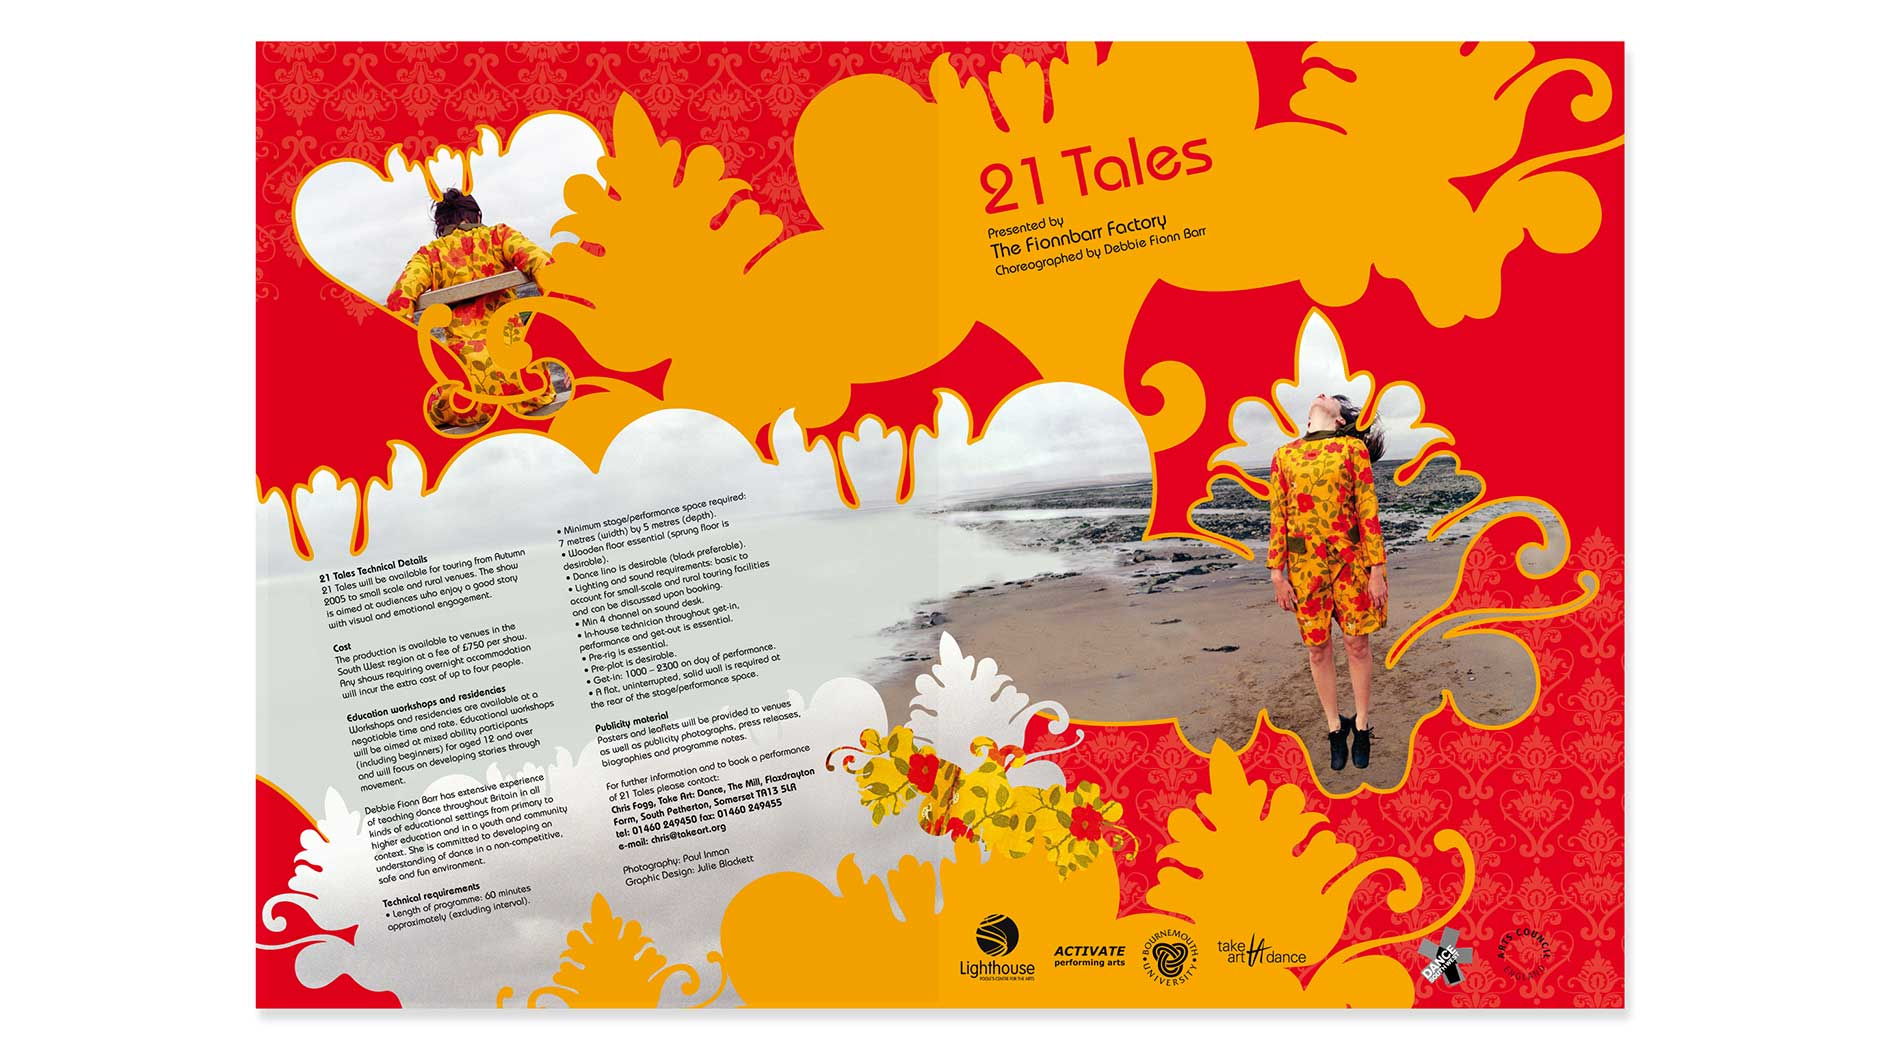 21 Tales brochure design outside covers